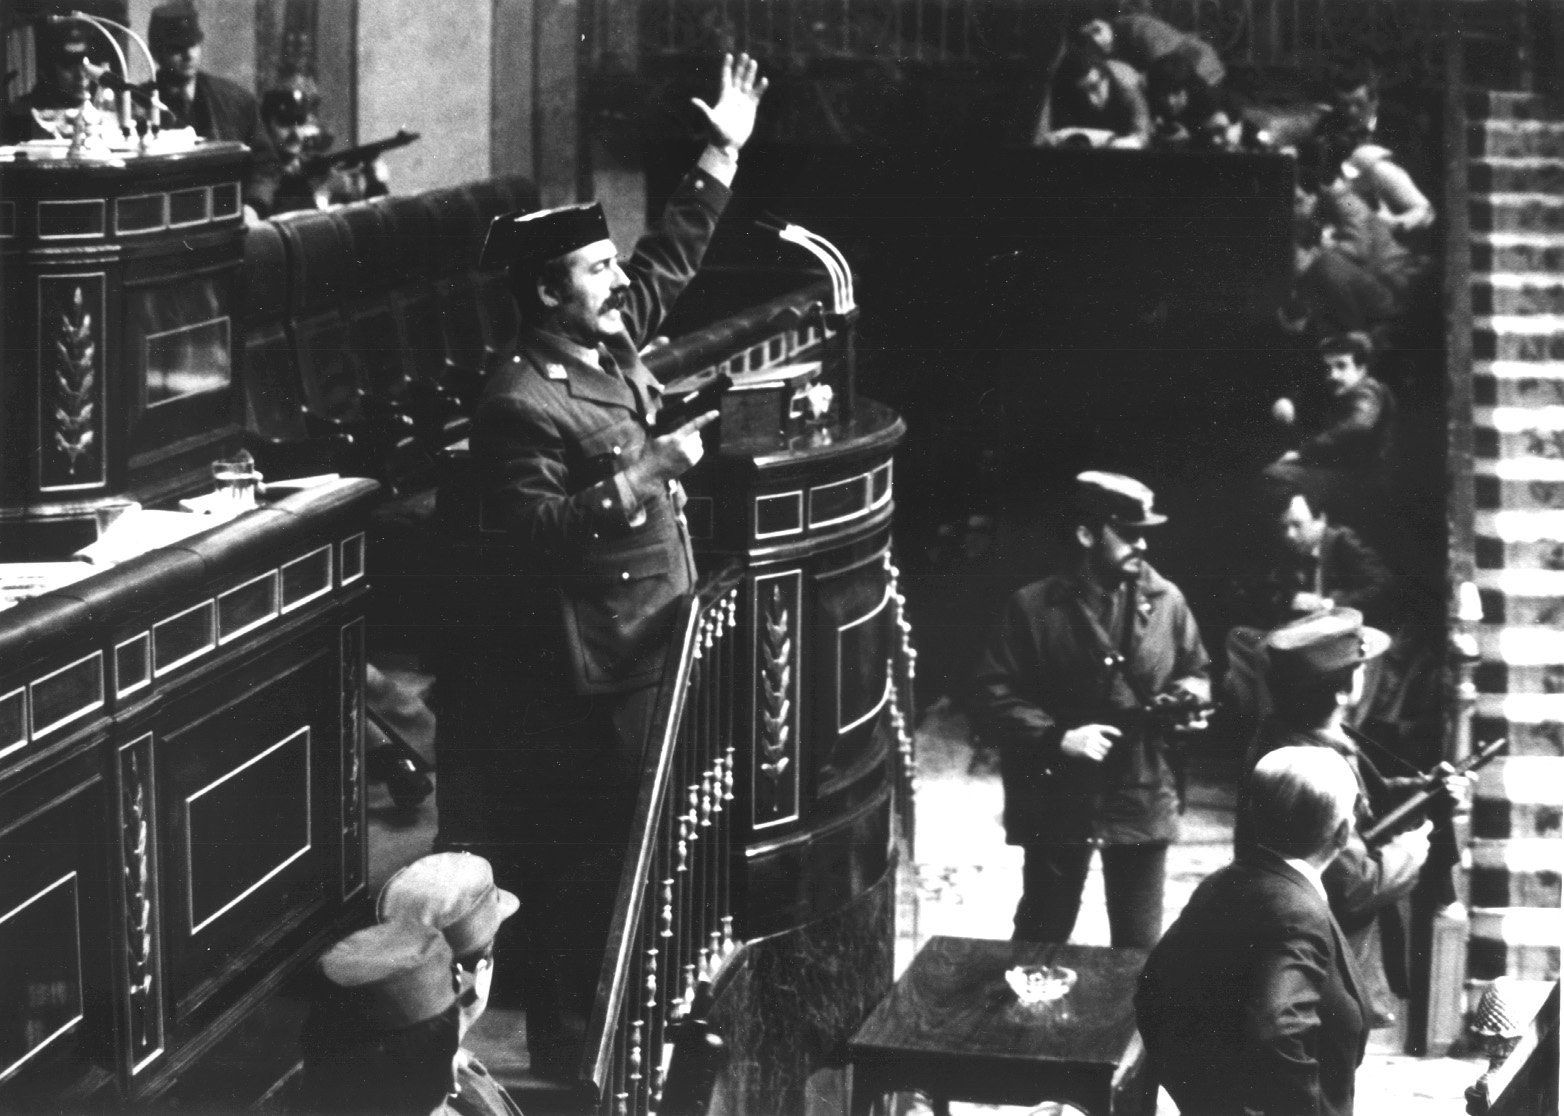 Civil Guard Lieutenant General Antonio Tejero waves a pistol inside parliament as Civil Guards stormed the building and held the government hostage in this February 23, 1981 file picture. Twenty years ago this Friday Spain's new democracy hung by a thread as 300 Civil Guards attempted to replace it with a military-led government in a failed coup attempt.  PH/WS - RTRENT5